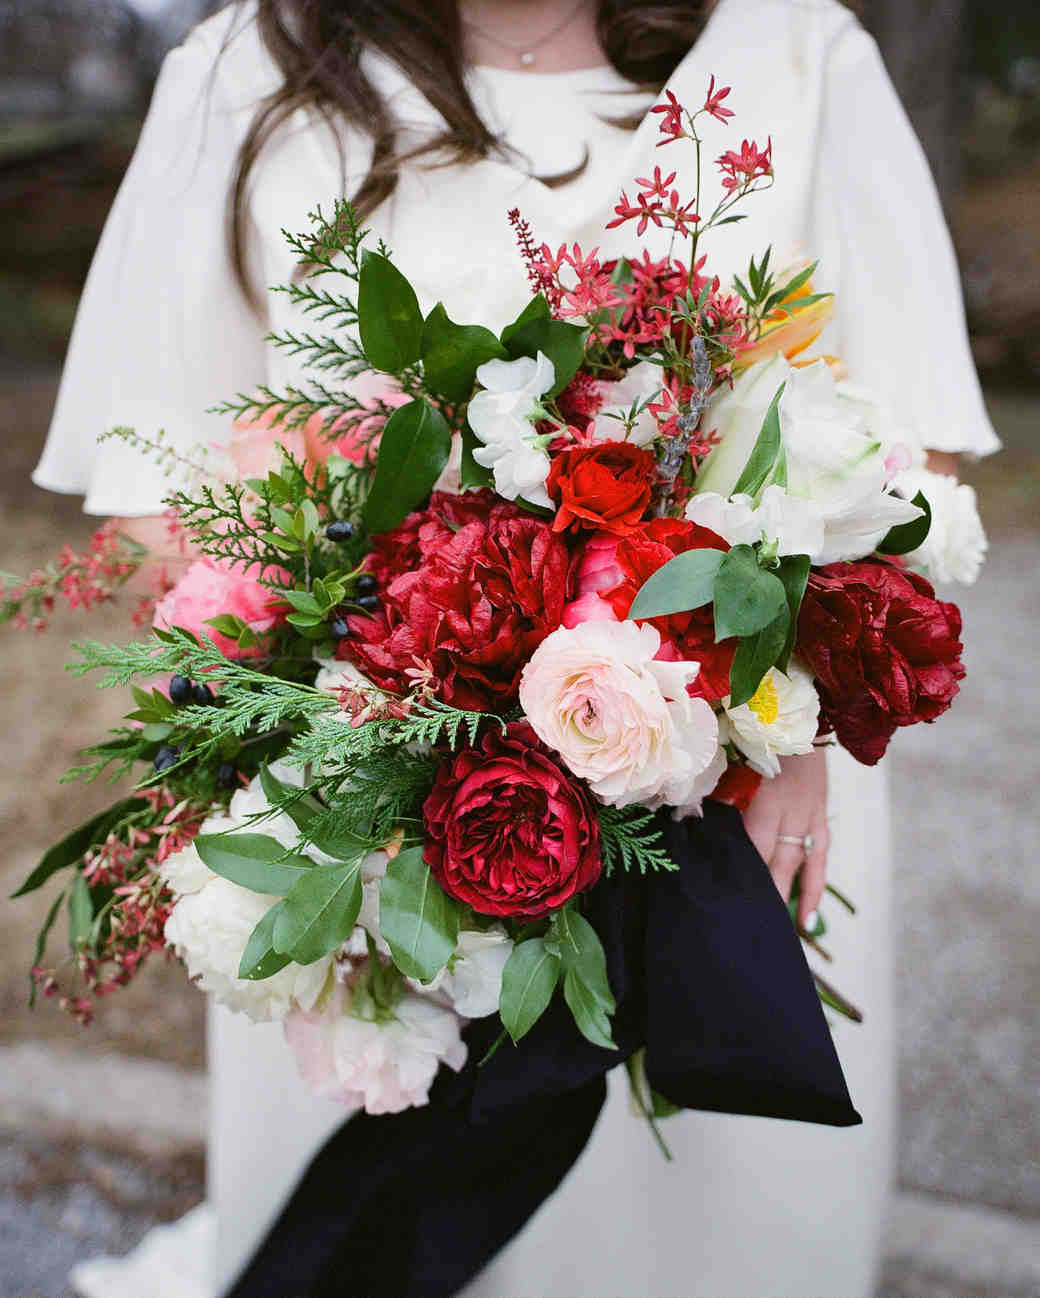 Flower Wedding Bouquet: The 50 Best Wedding Bouquets